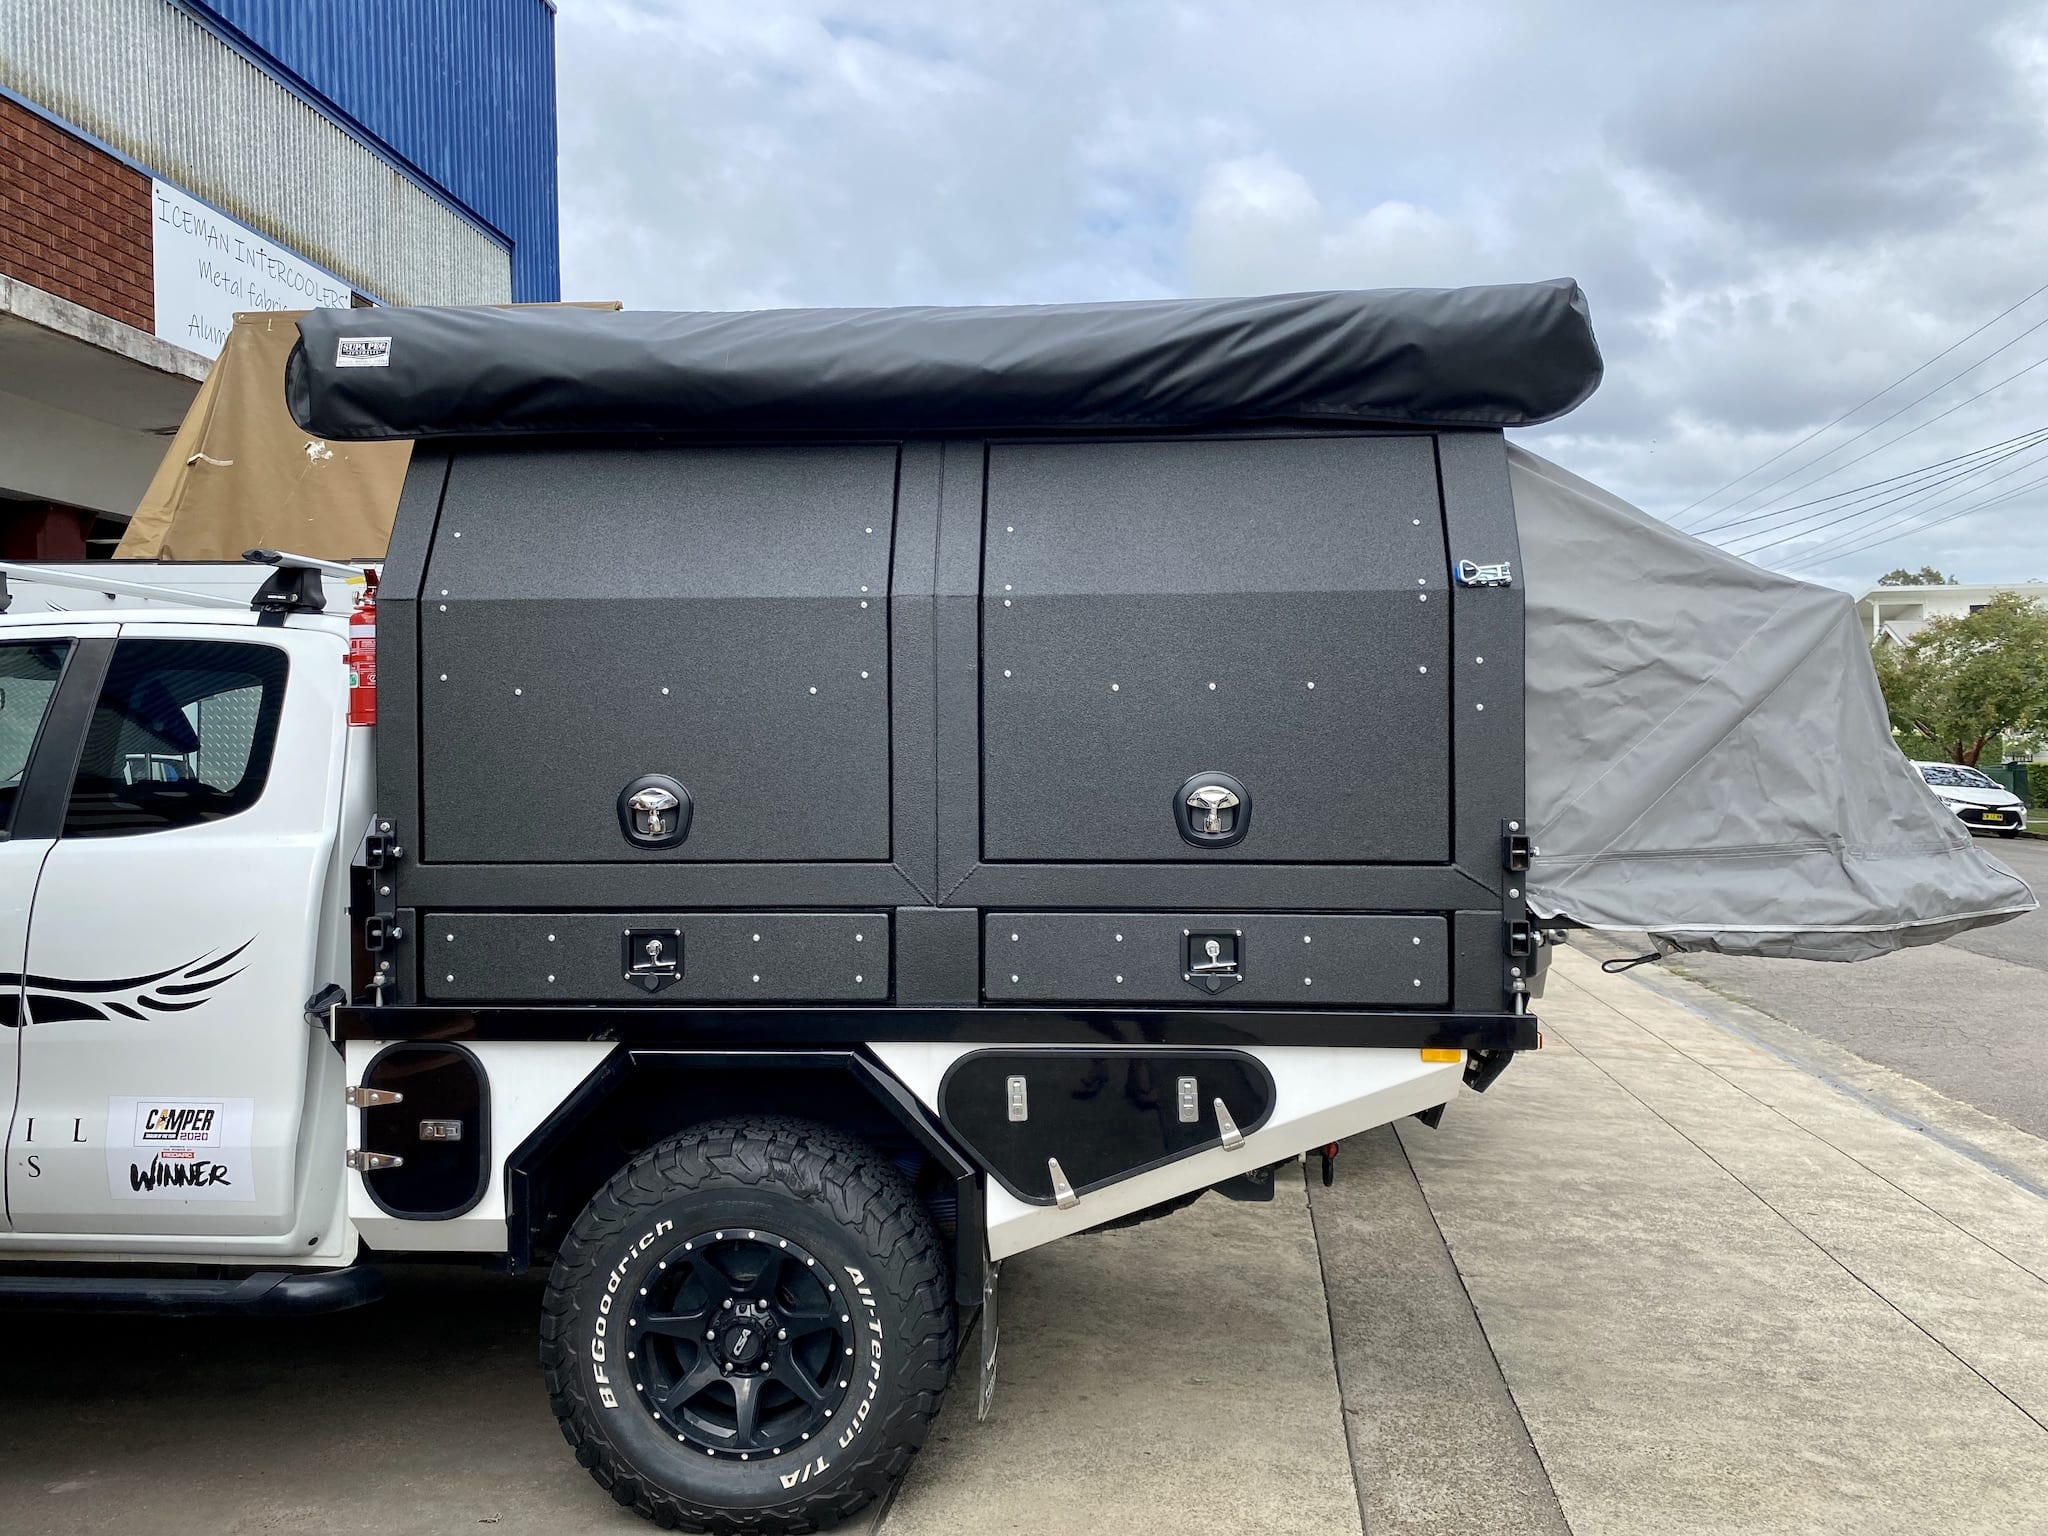 The Wedgetail Hawk ute canopy camper viewed from the passenger side.